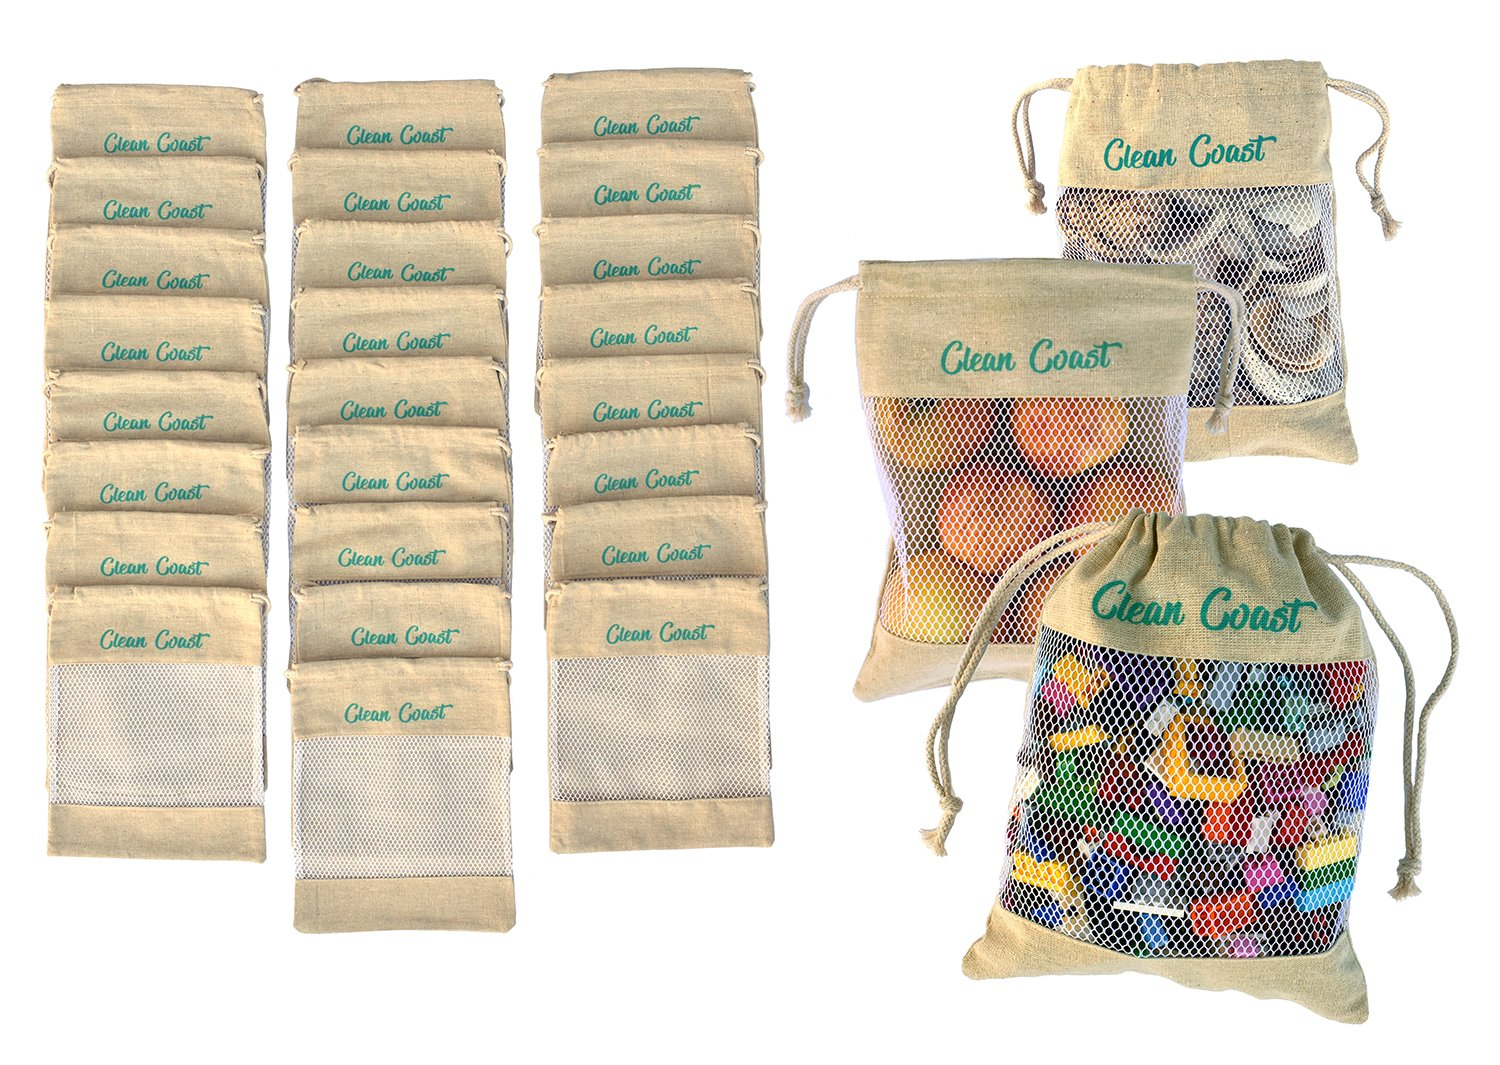 Reusable Natural Jute All Purpose 8x10'' Draw String Bags (25 Pack) Our Strong Stitched Bags are Used for; Party & Favor Bags, Arts & DIY Crafts, Toys, Rocks & Shells, Wedding & Birthday Gift Bags